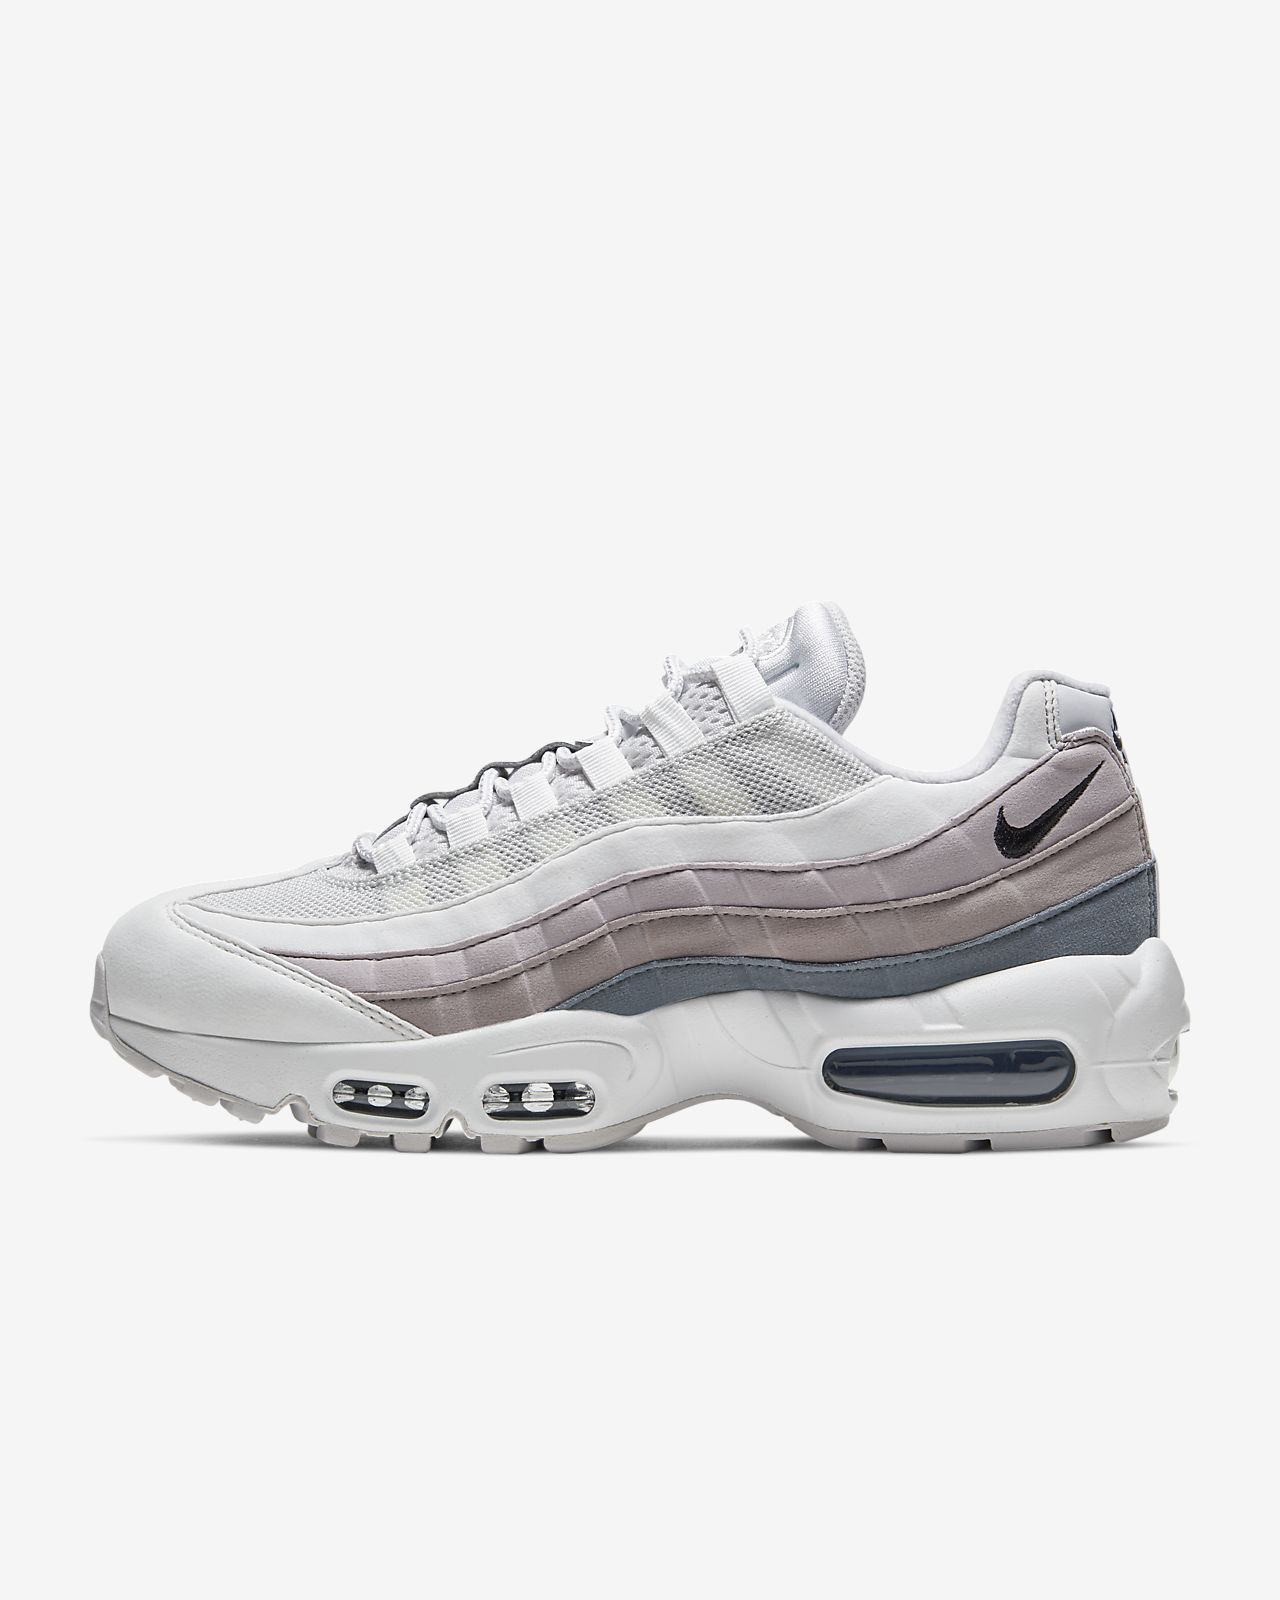 official photos b849b 47ae2 ... Nike Air Max 95 Women s Shoe